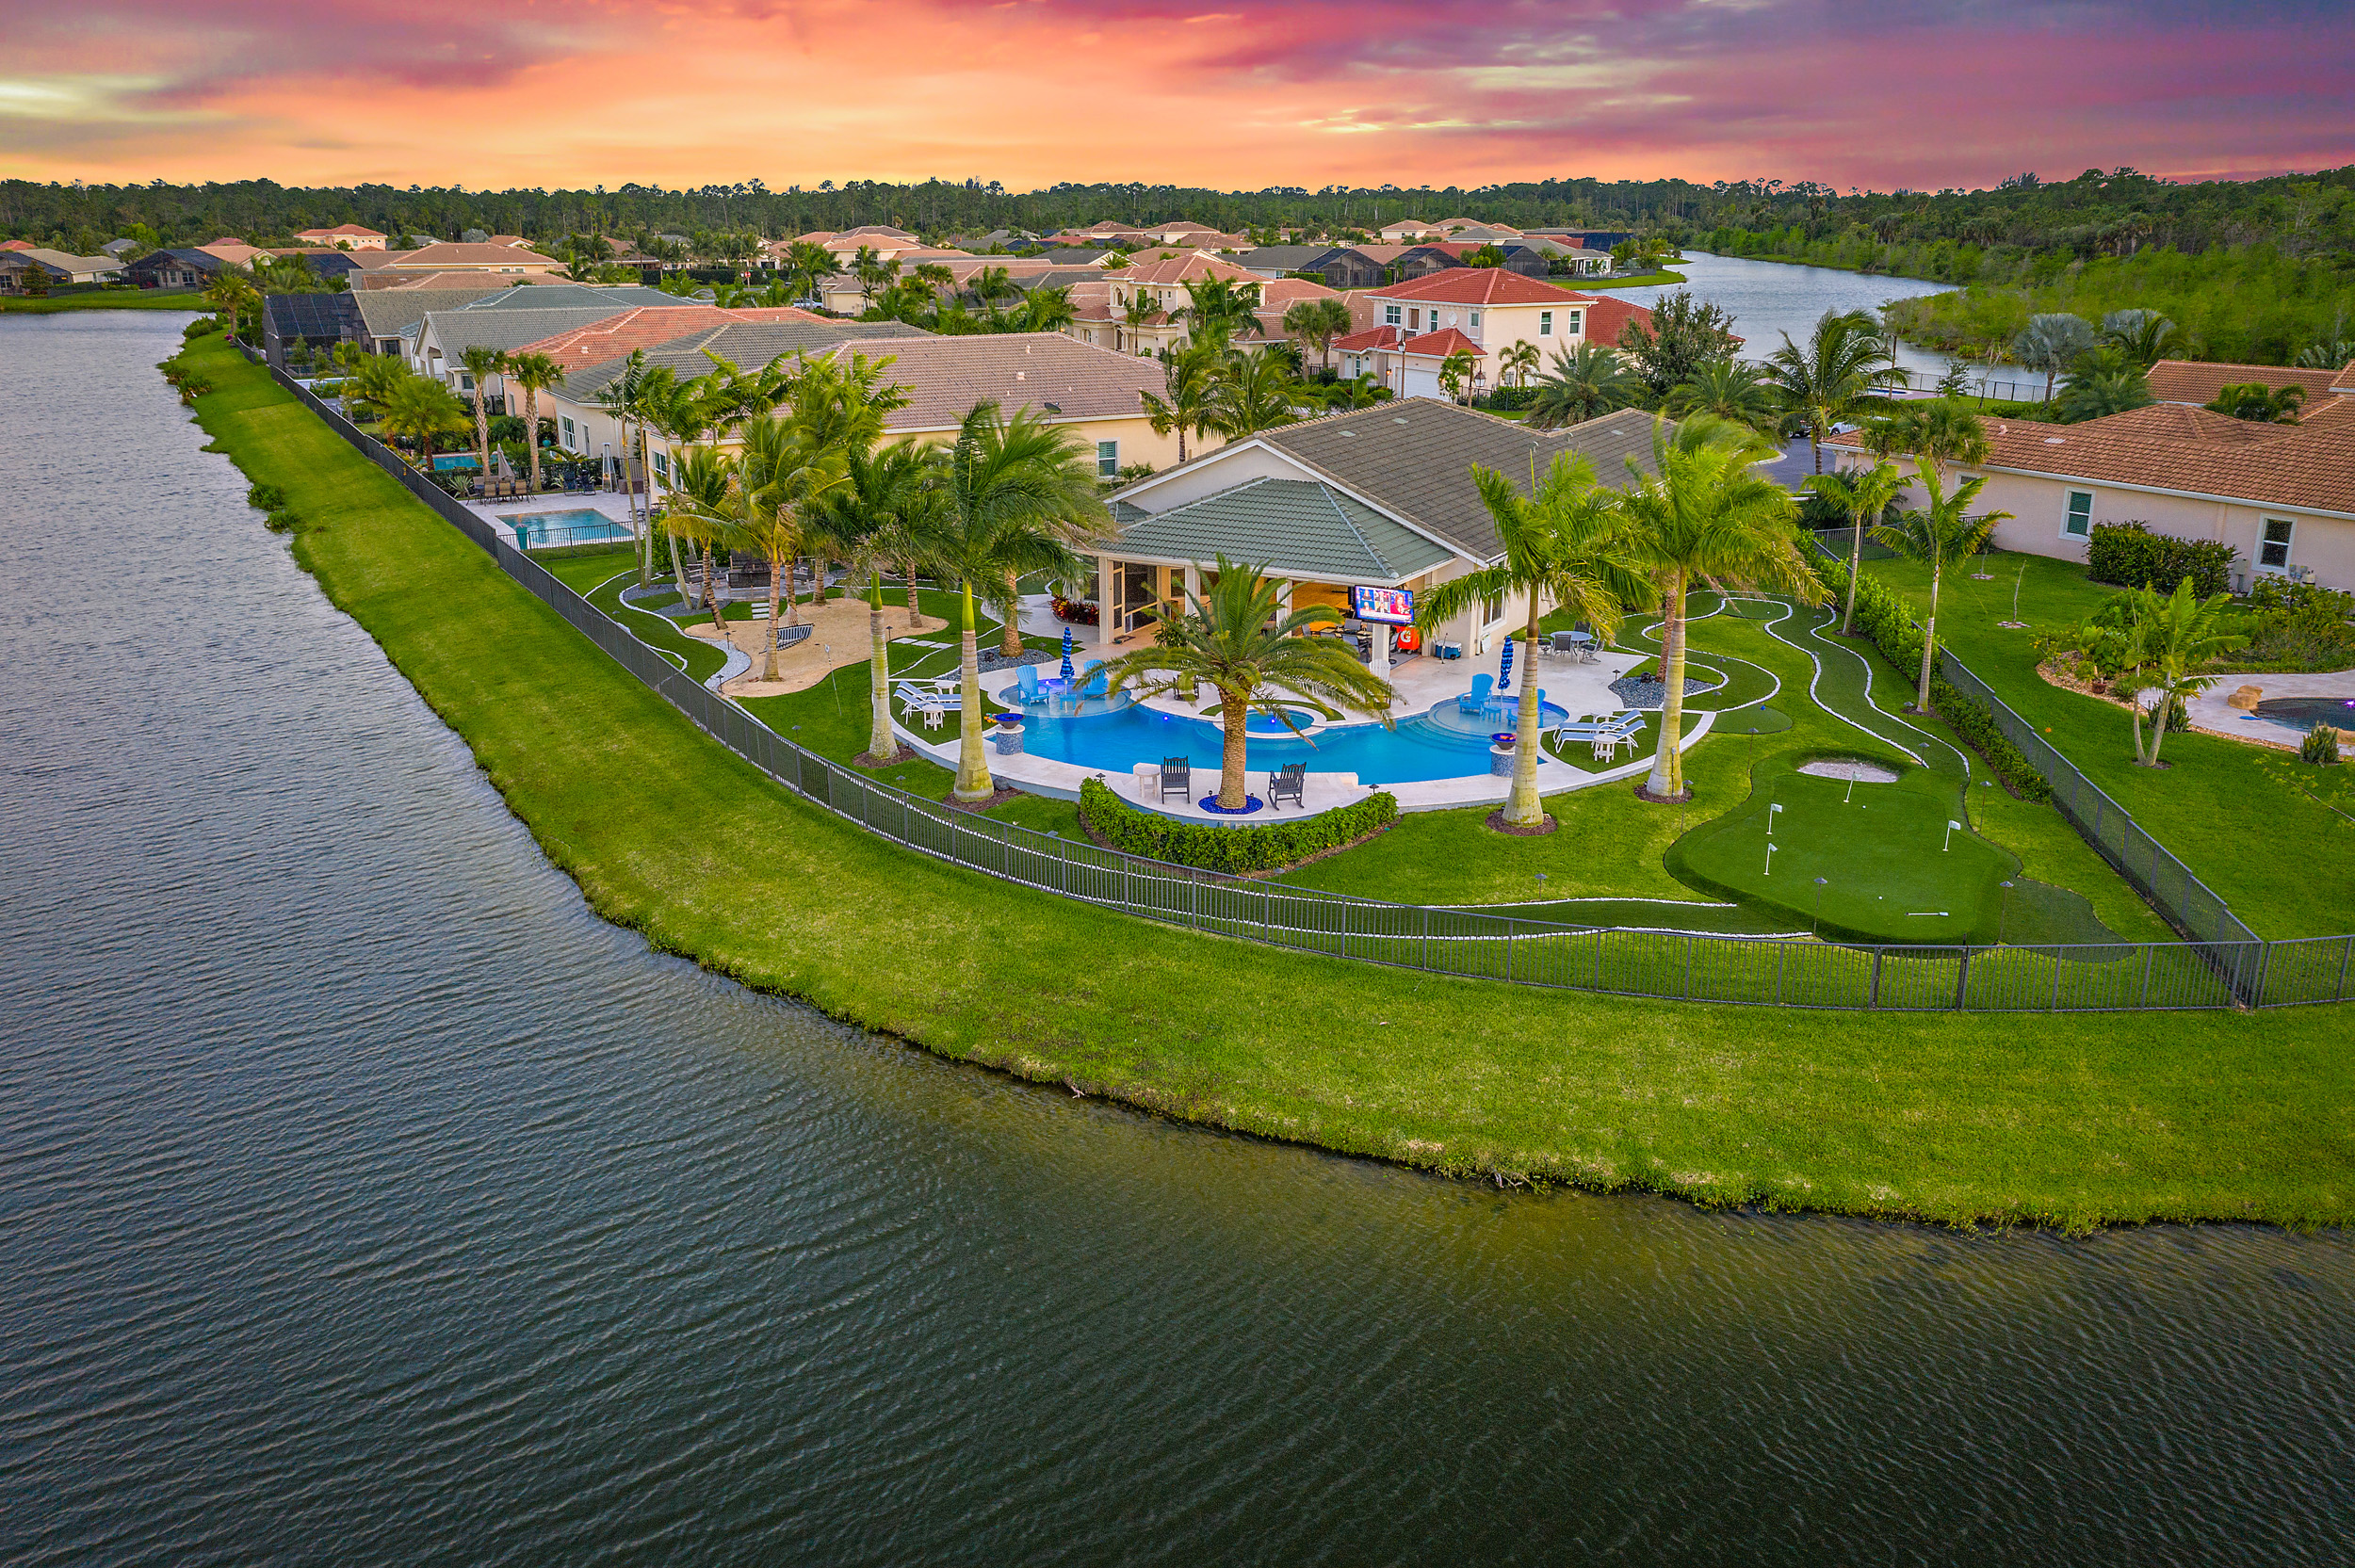 553 Carrara Court Luxury Homes Pool Homes for sale in Jupiter, Florida